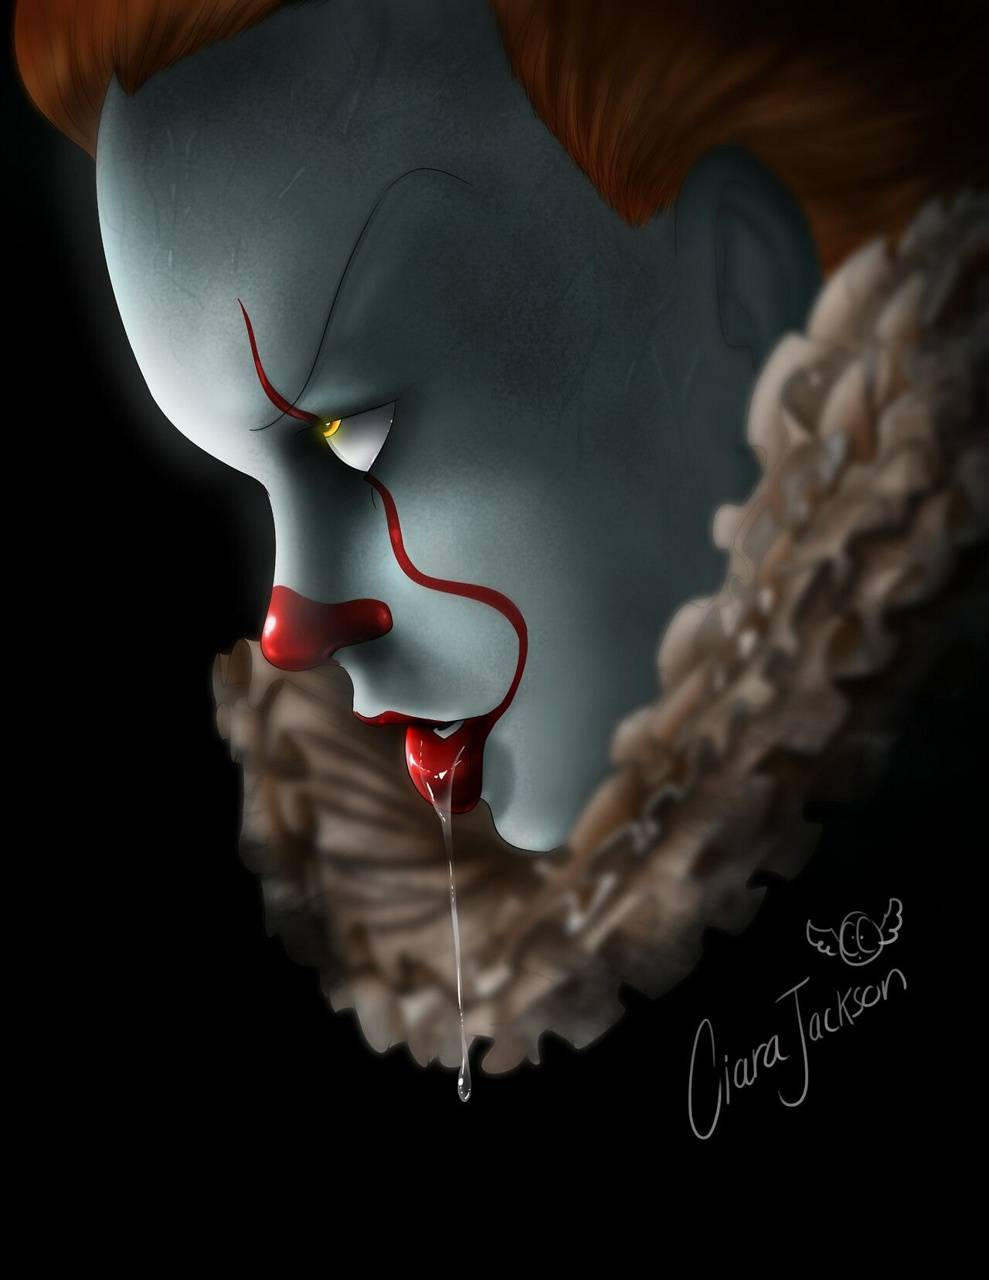 Pennywise cool art